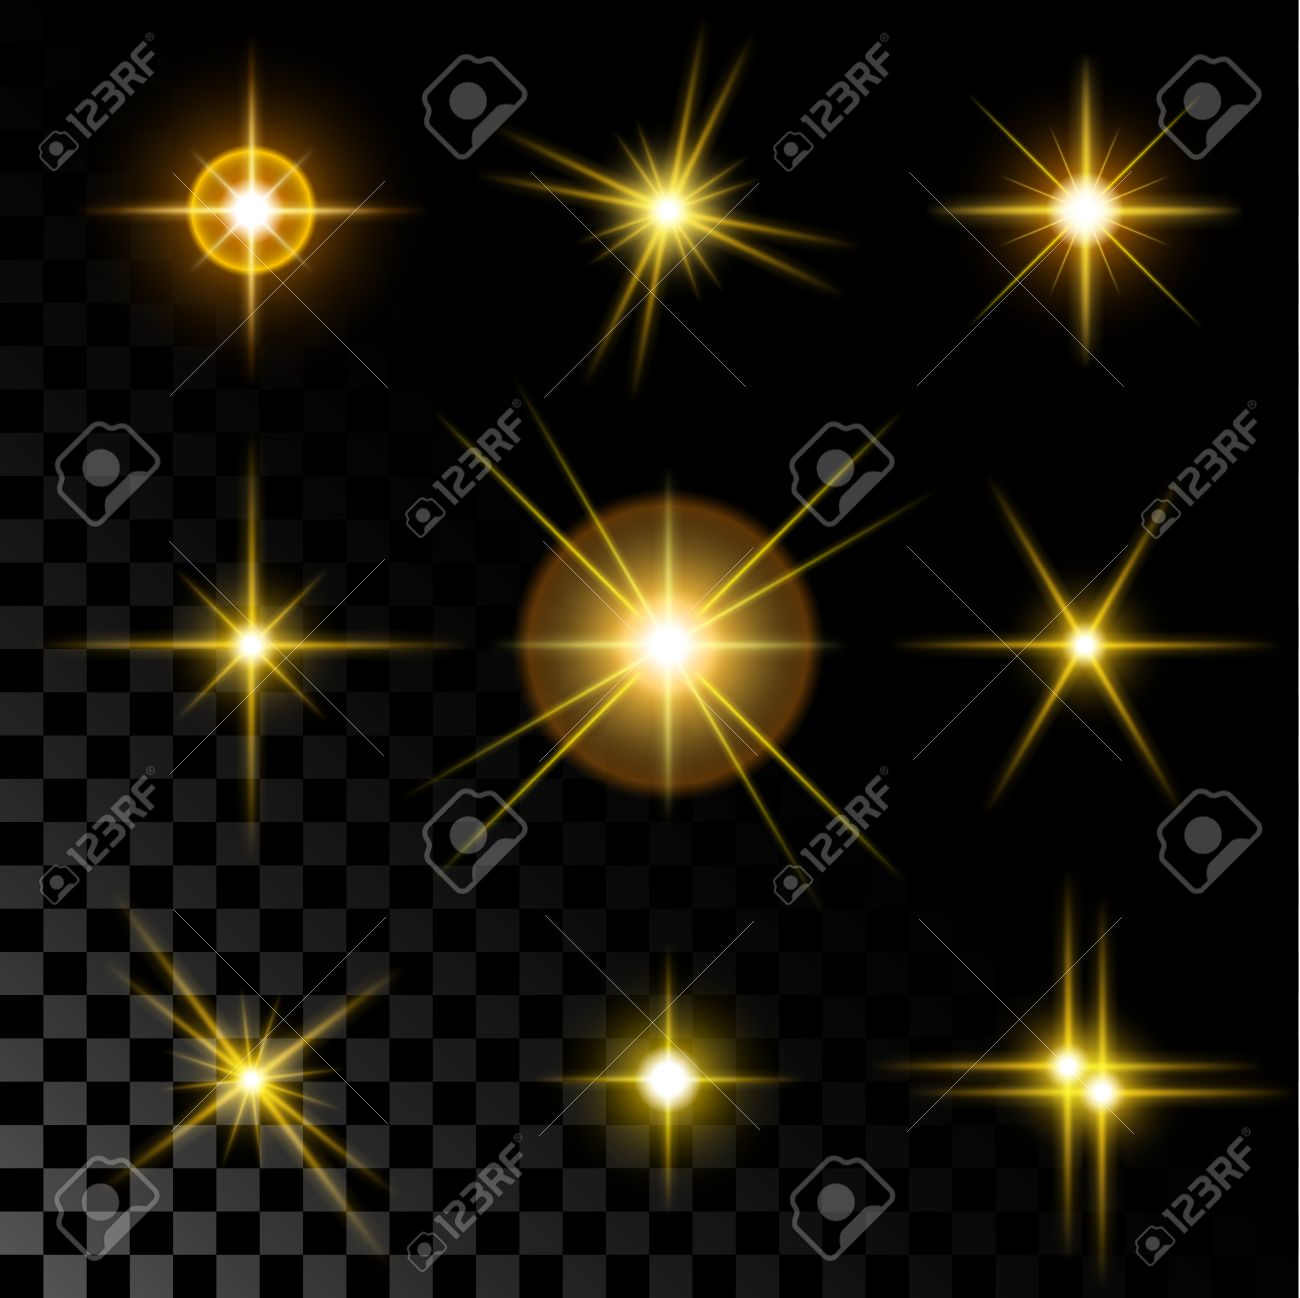 Set of the realistic sparkling gold star fires and flashes on a transparent background a vector illustration. - 58690078